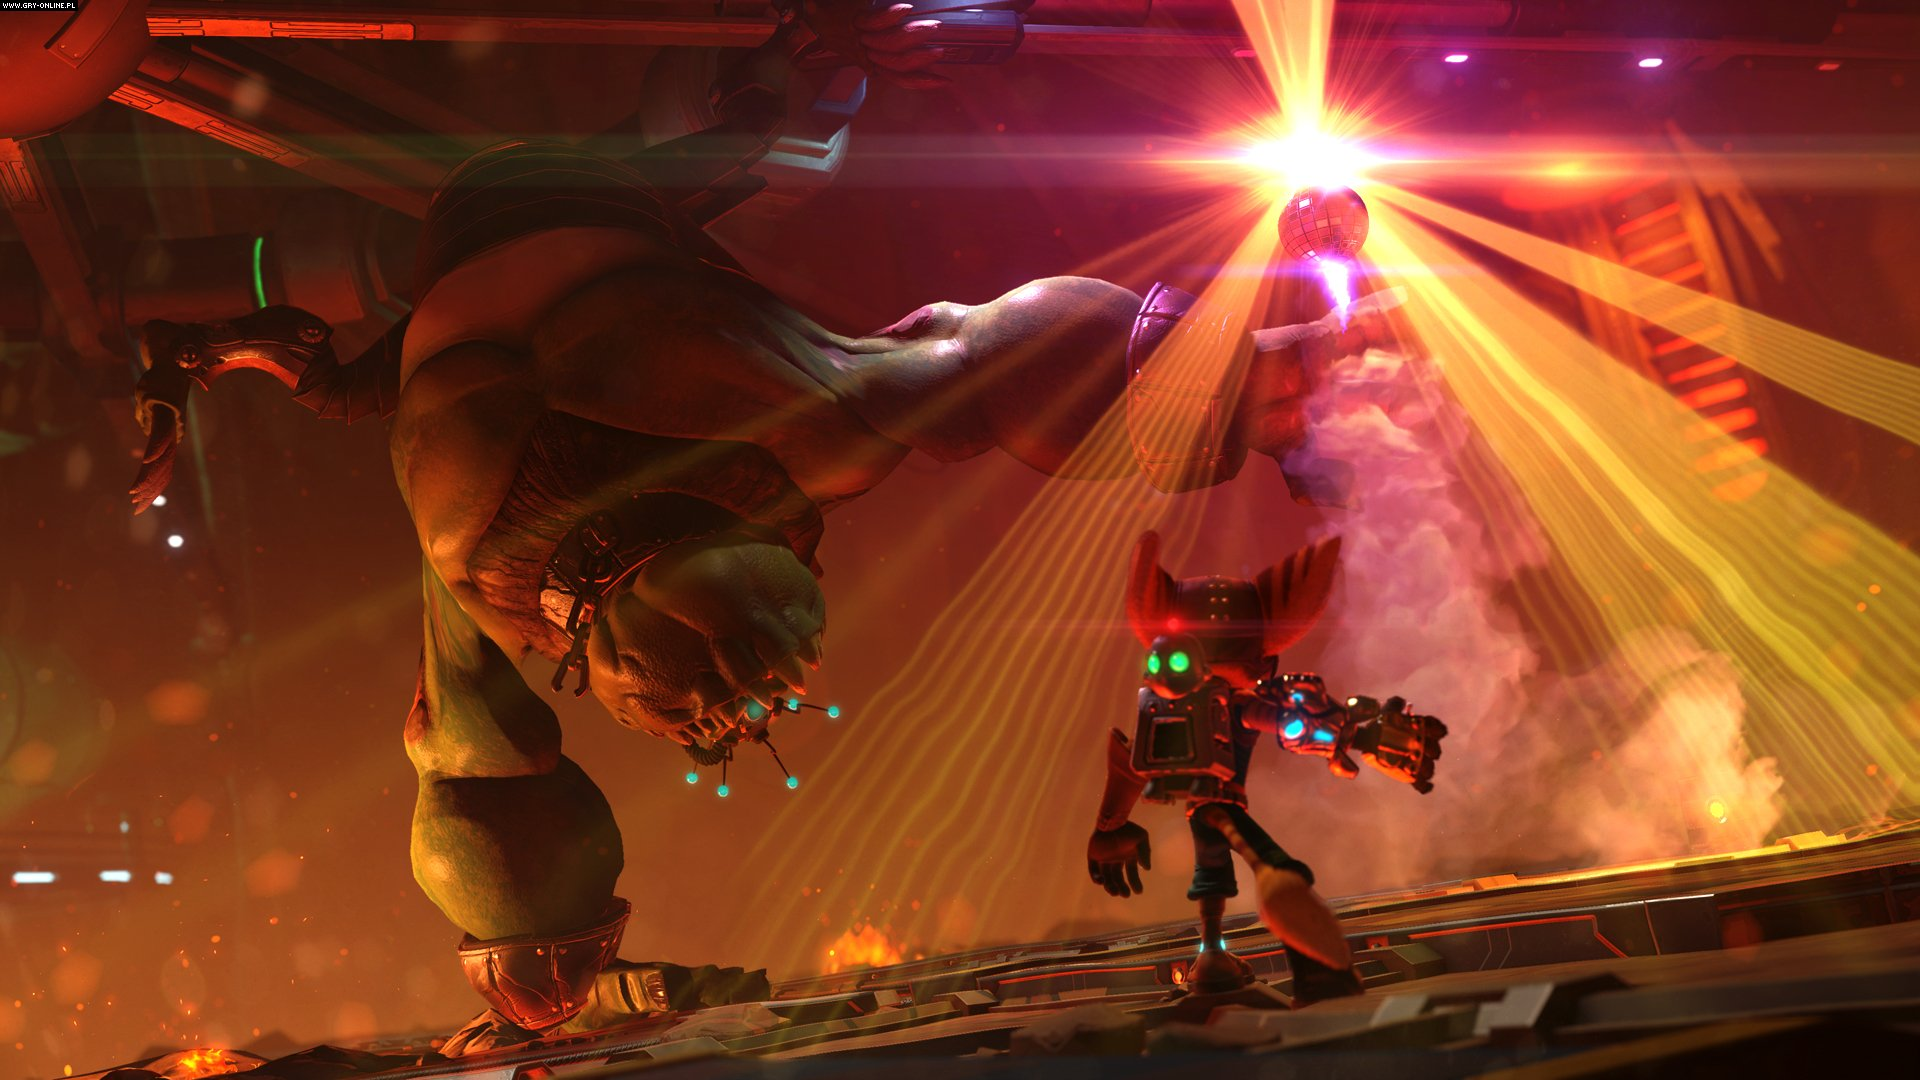 Ratchet & Clank PS4 Games Image 13/15, Insomniac Games, Sony Interactive Entertainment